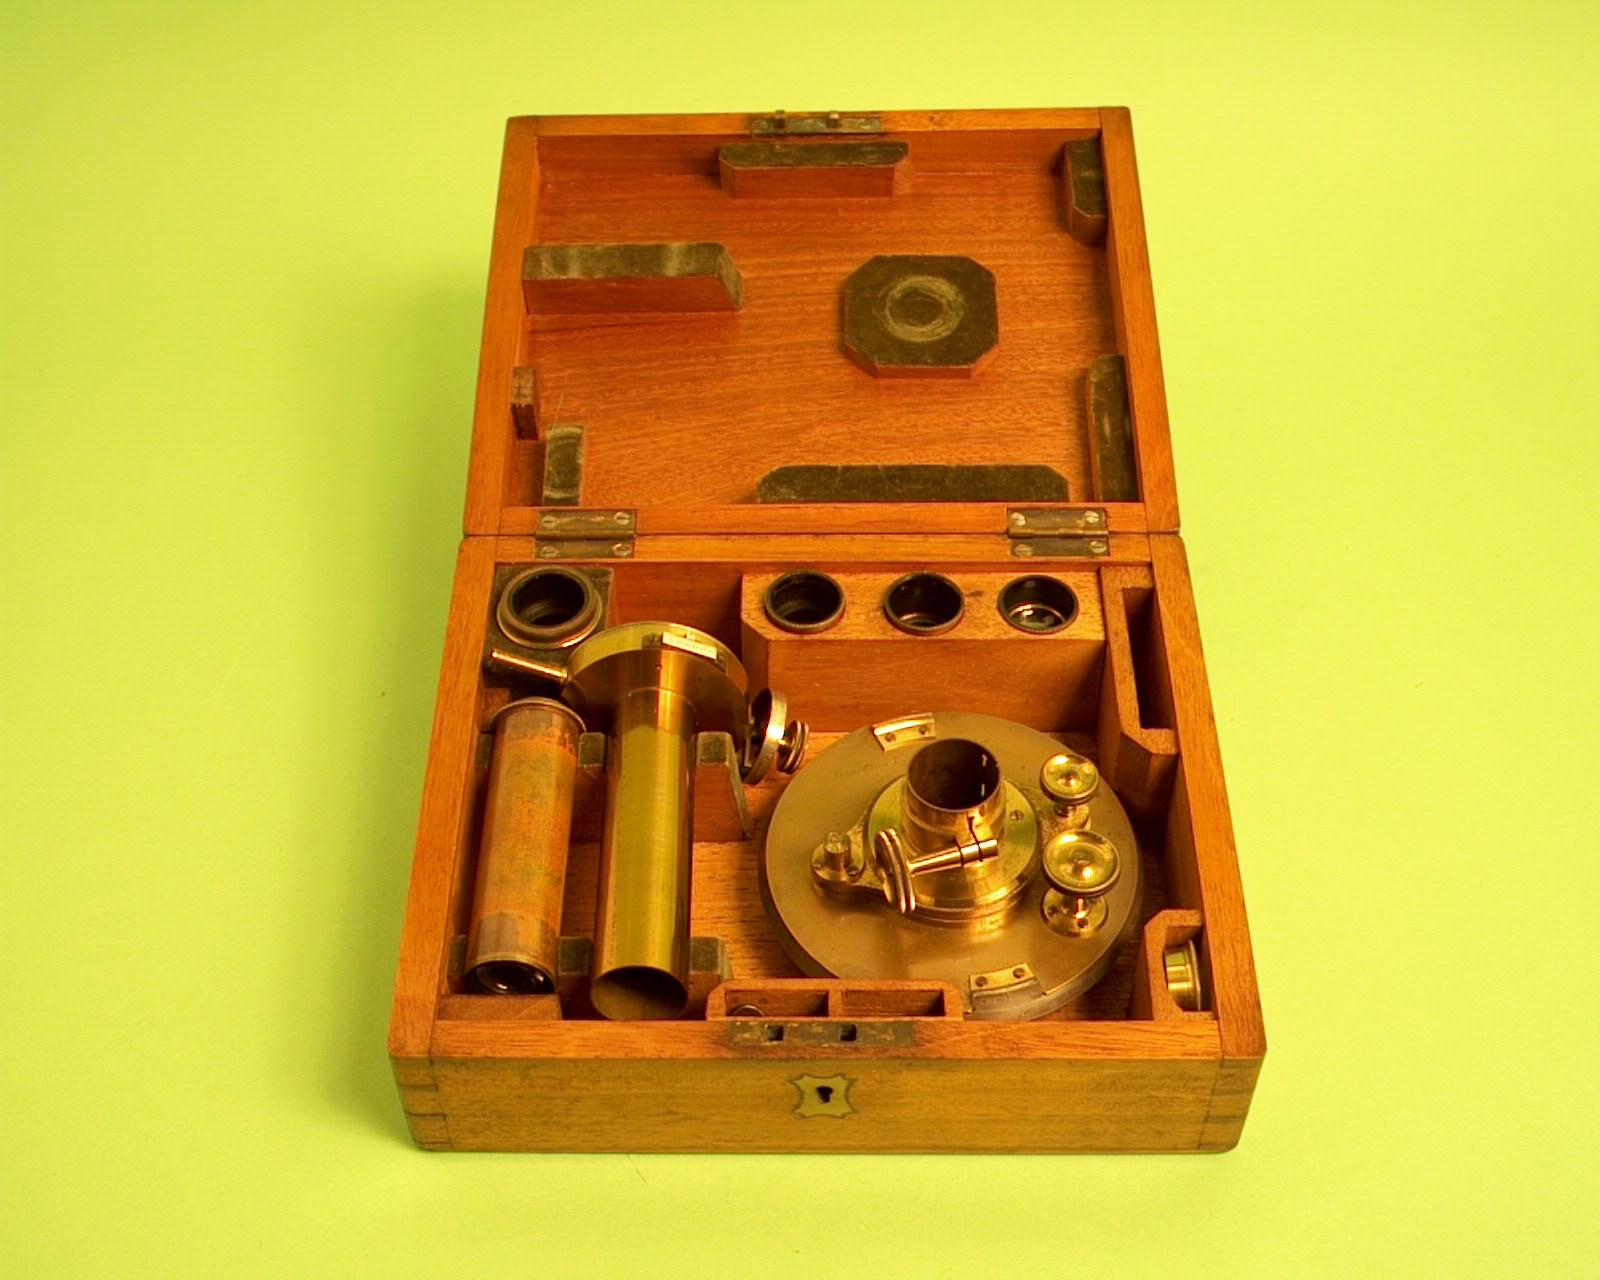 Micrometer by Troughton and Simms, used by the 1874 Dutch expedition on Reunion